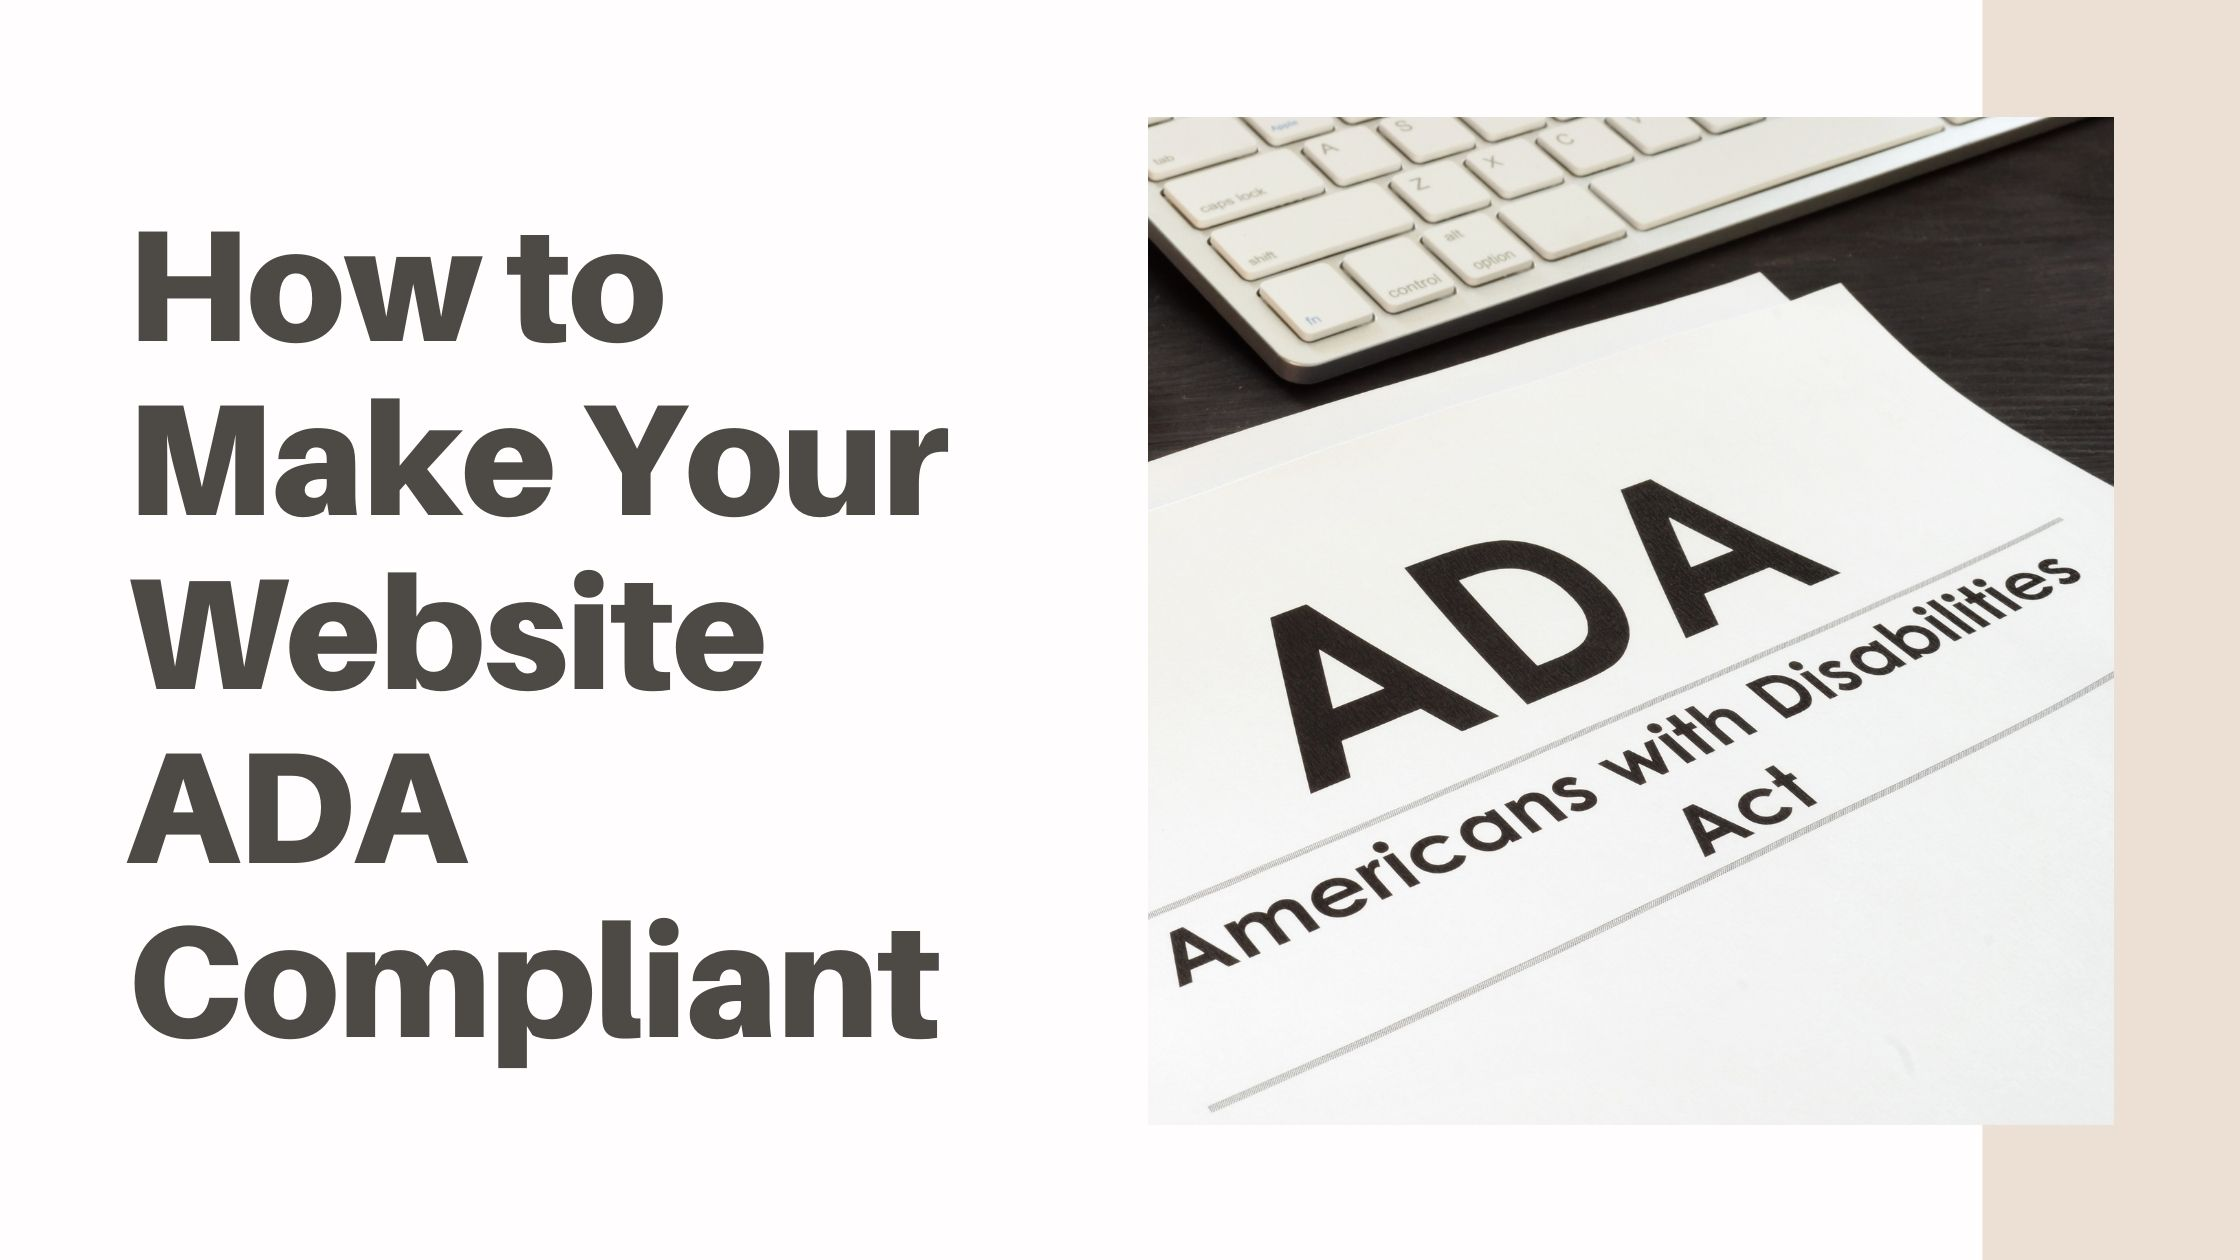 How to Make Your Website ADA Compliant